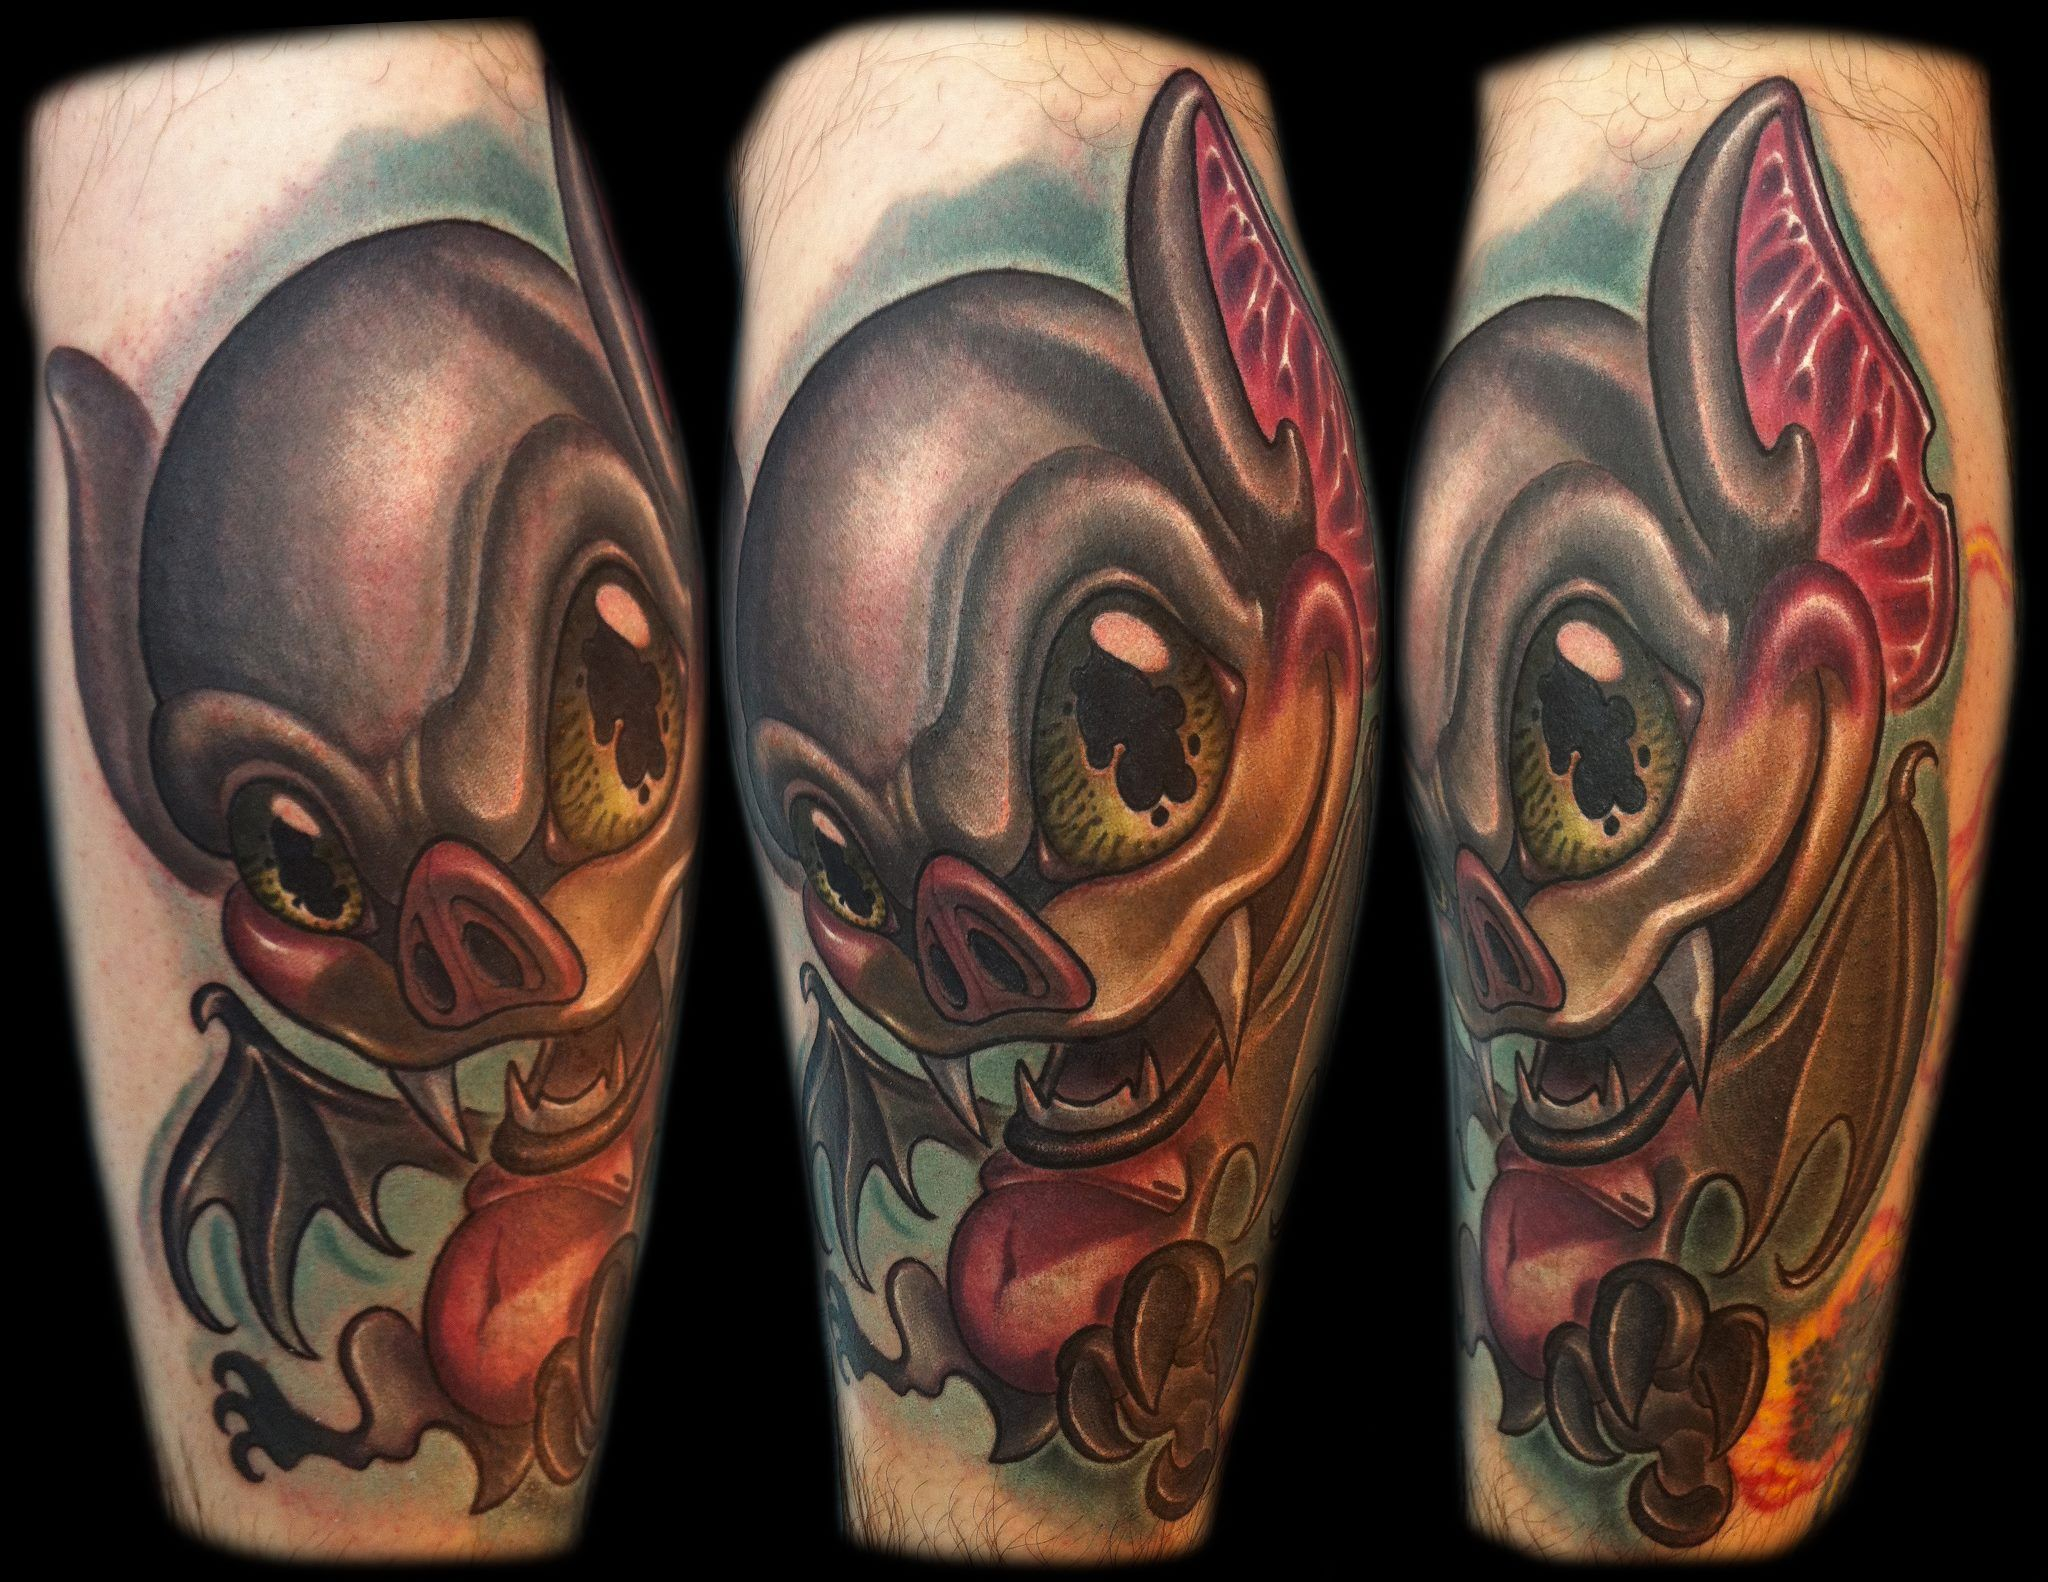 Zombie Tattoo Sleeve Designs Zombie Tattoos Designs And Ideas Page